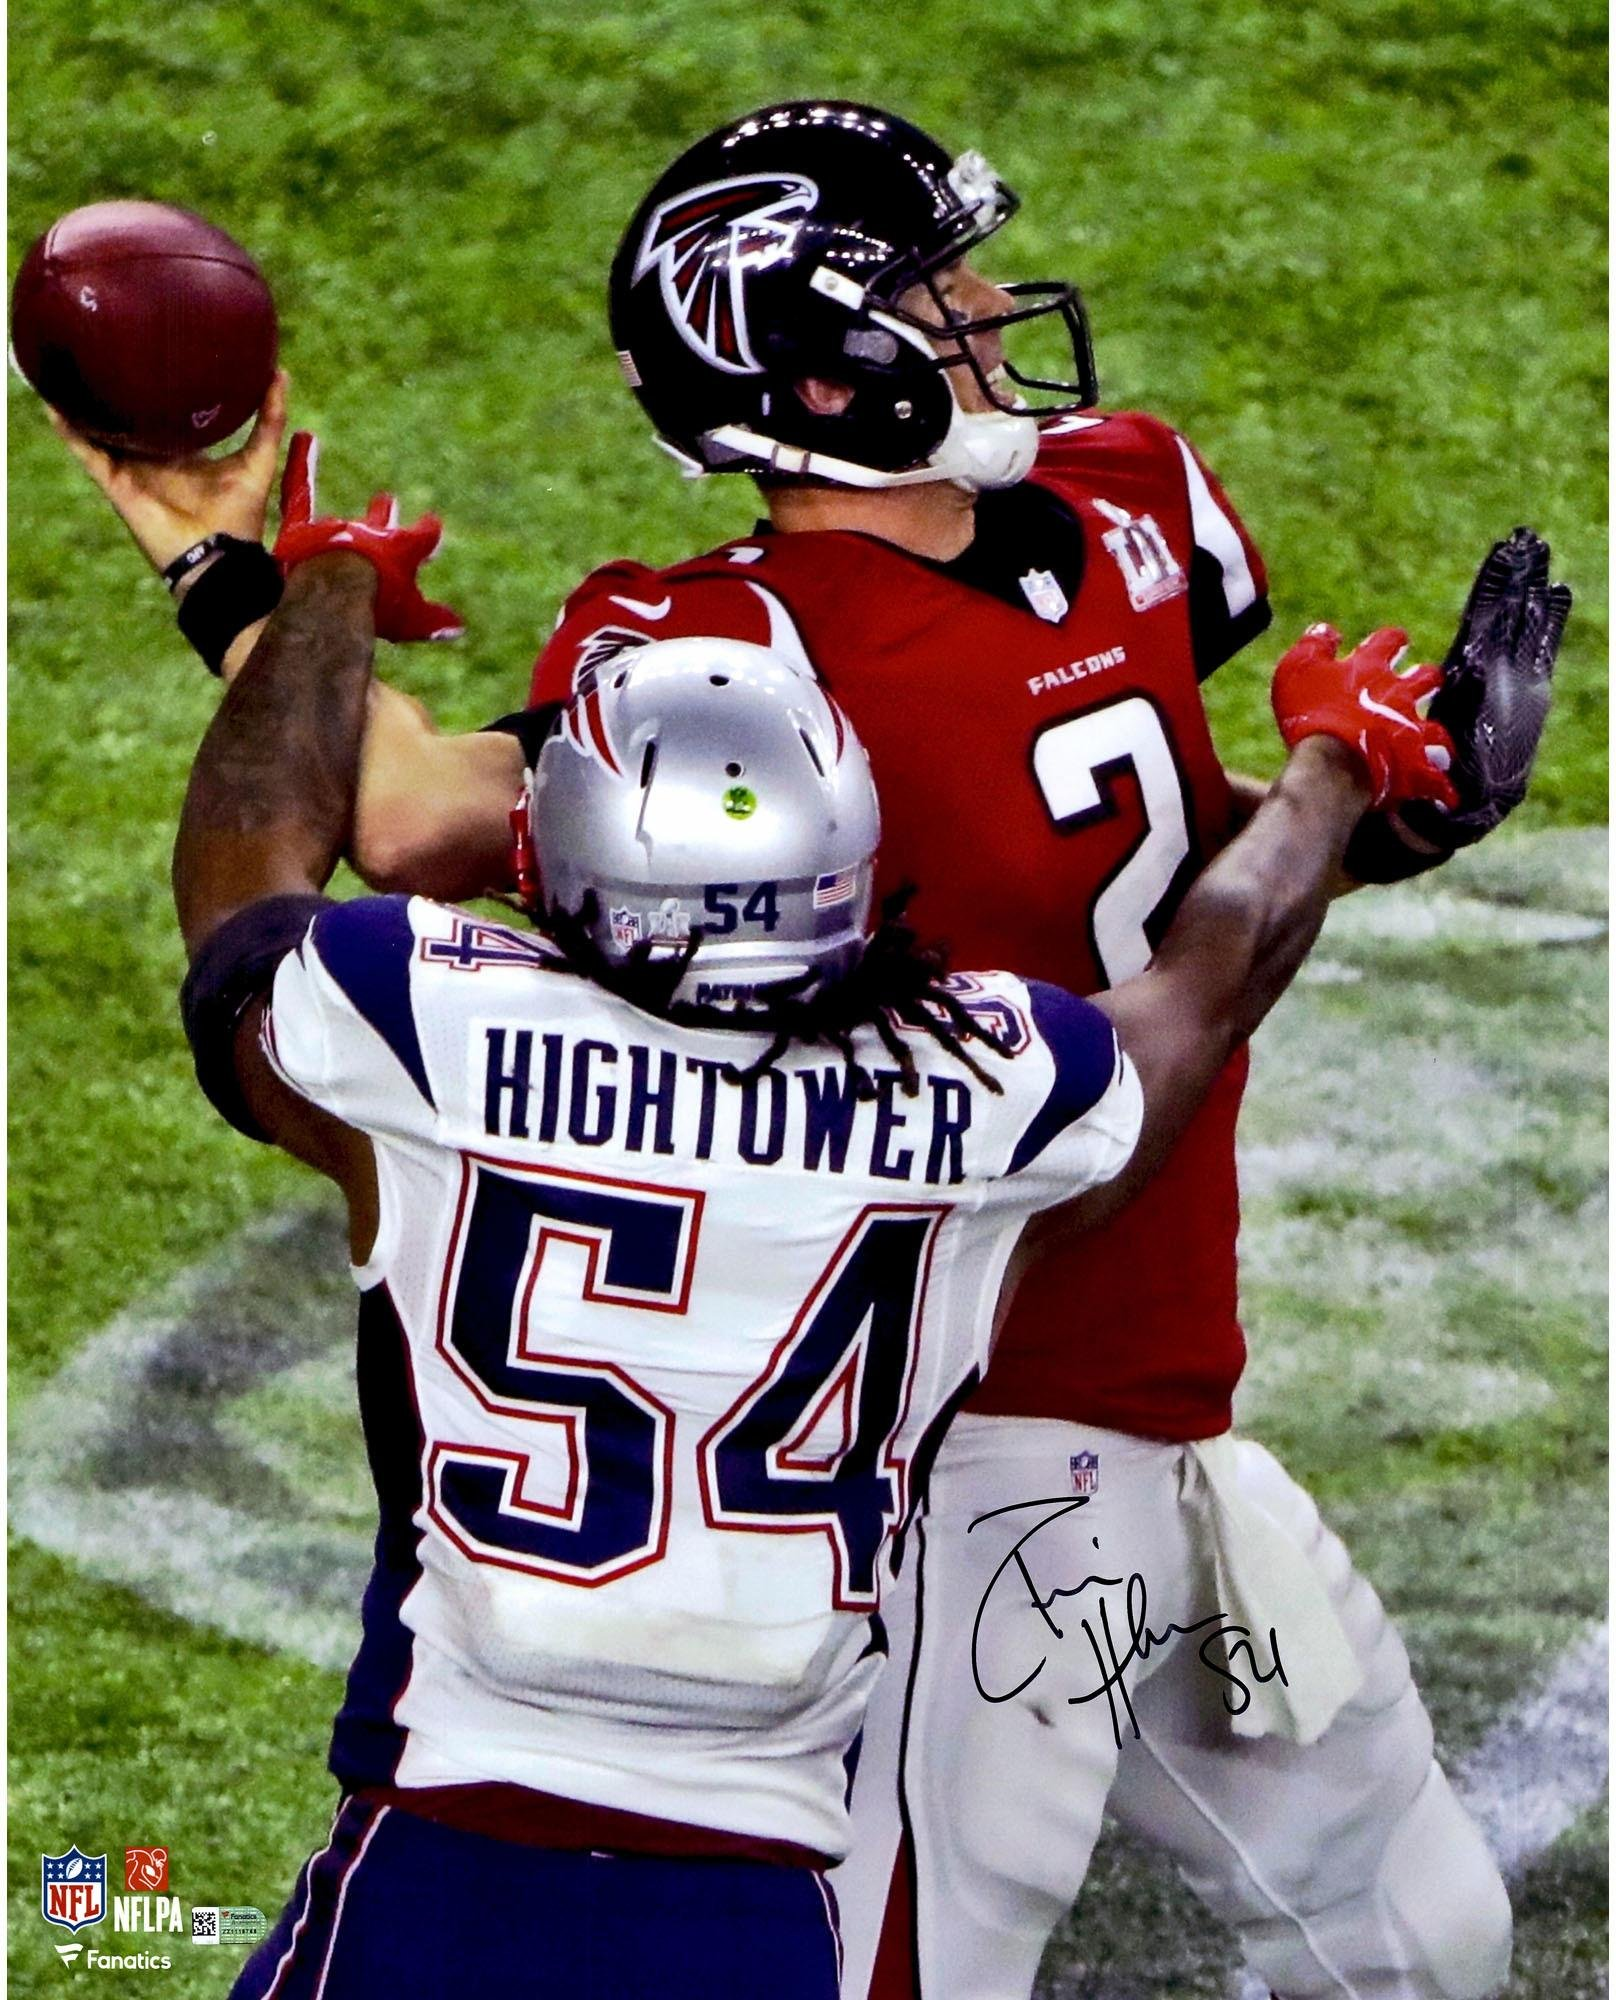 Buy Dont Hightower Now!